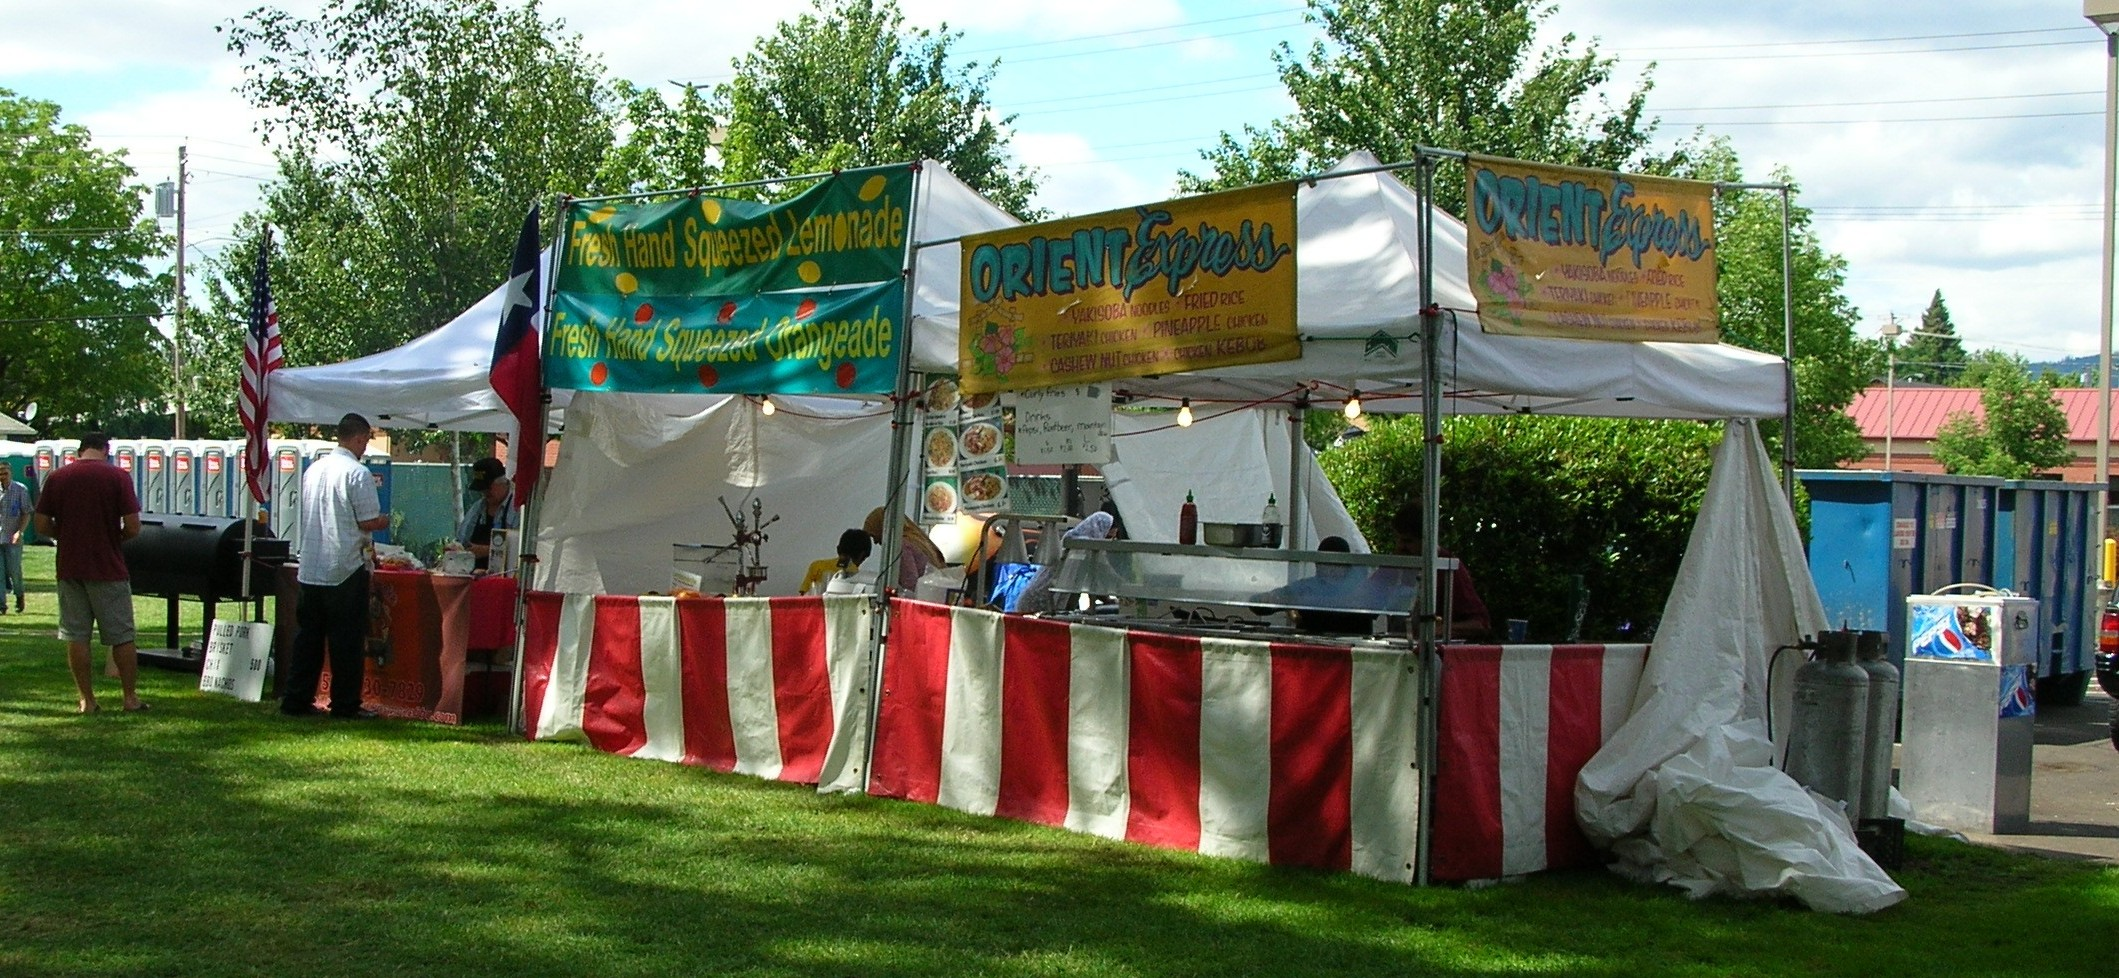 Concession Tents For Food Amp Mini Donut Business For Sale